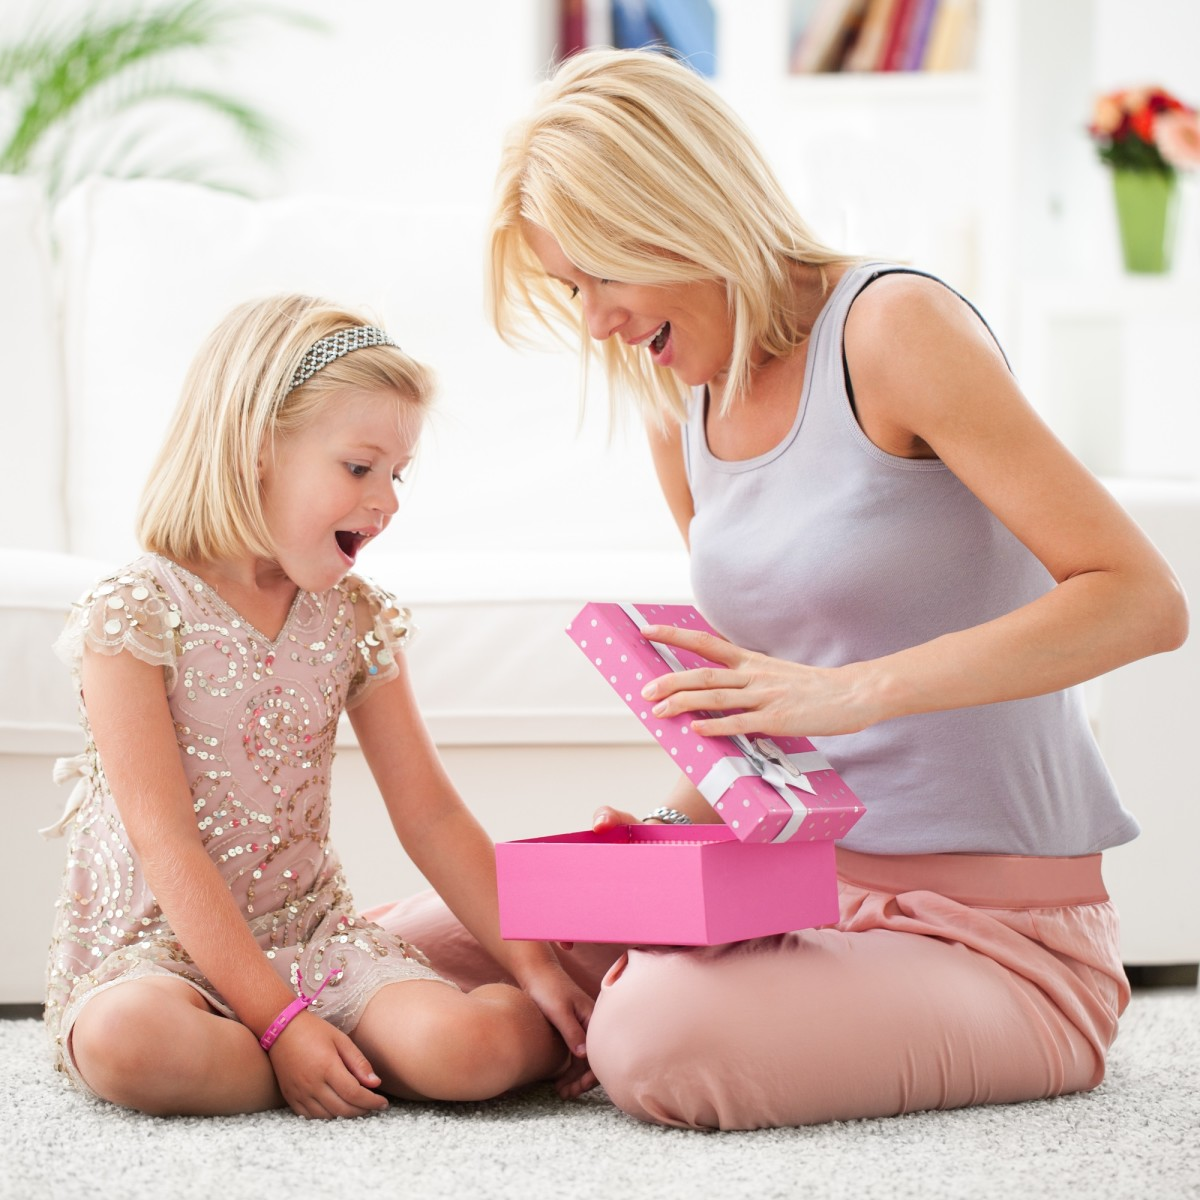 Meaningful Gifts for Mom from Daughter